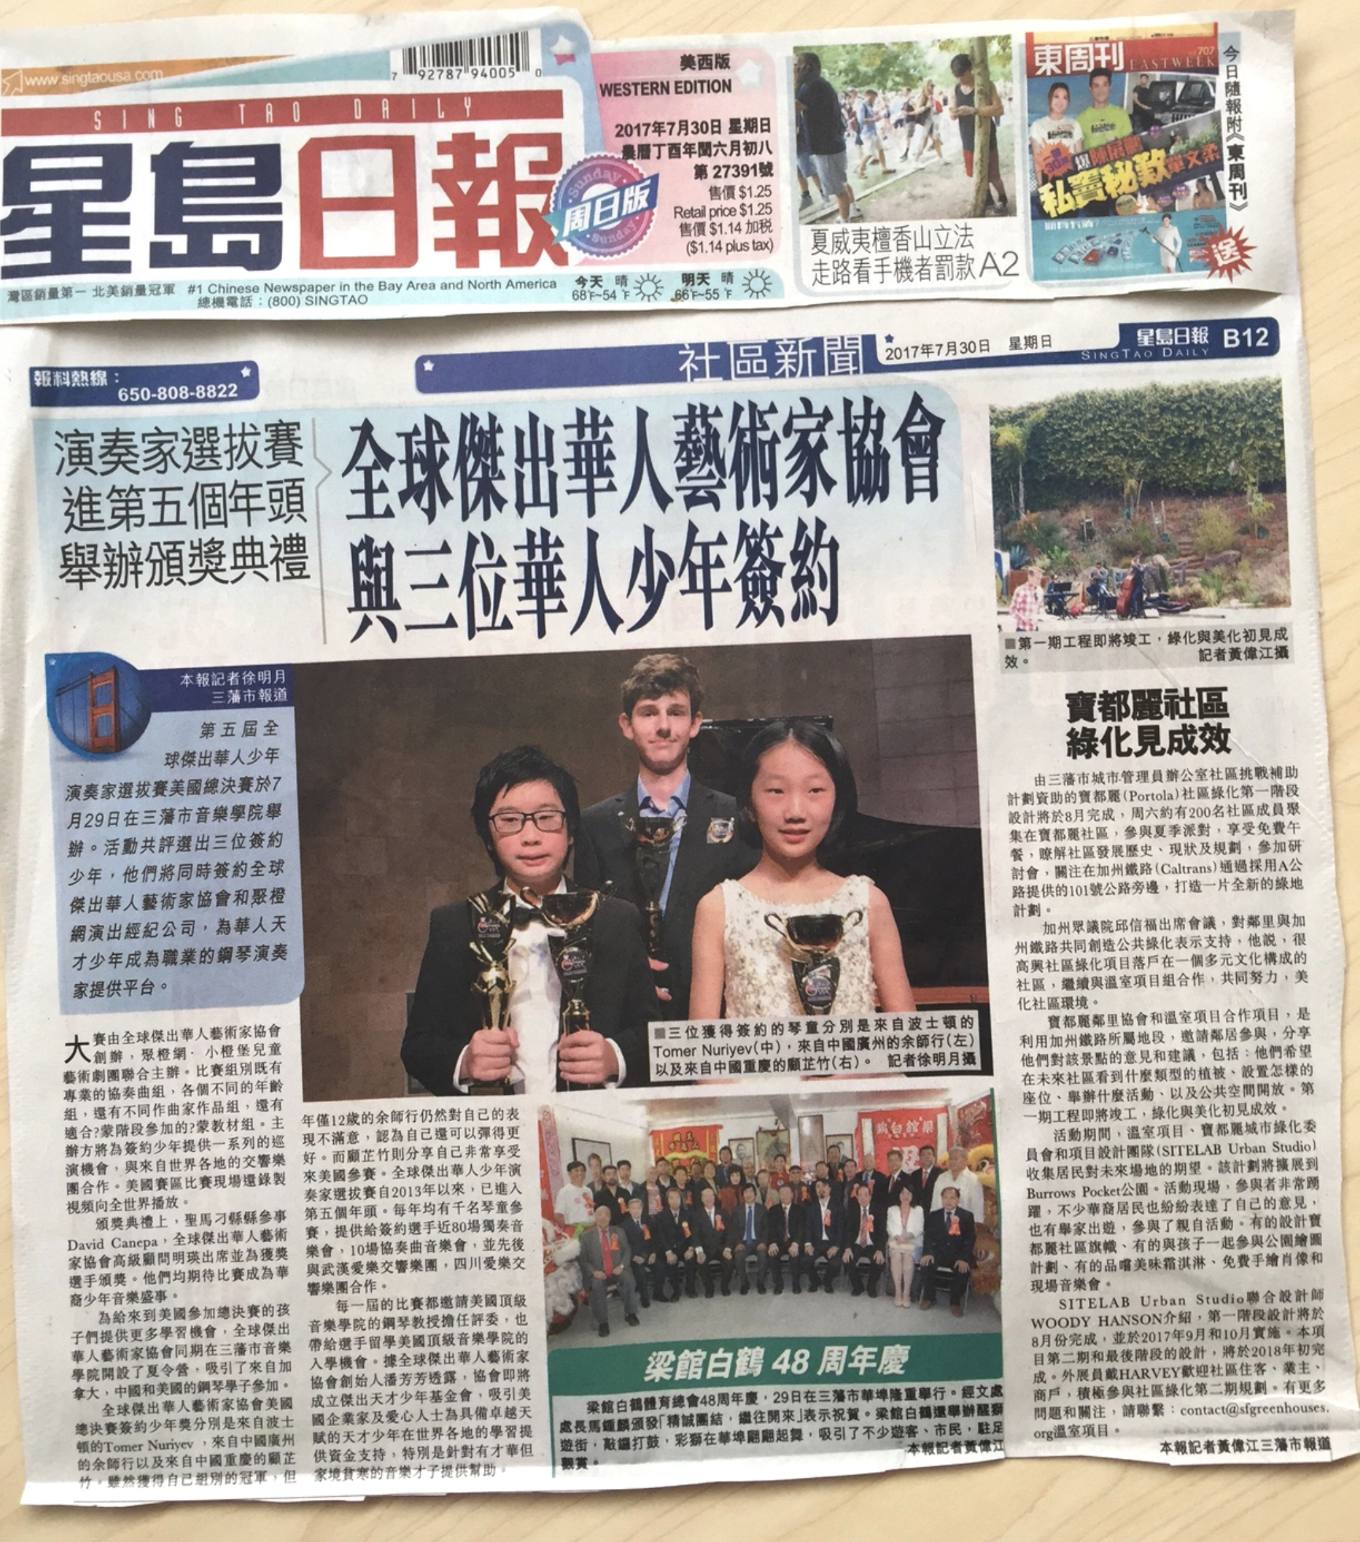 Burrows Pocket Park on the front page of the Chinese Newspaper - July 7, 2017